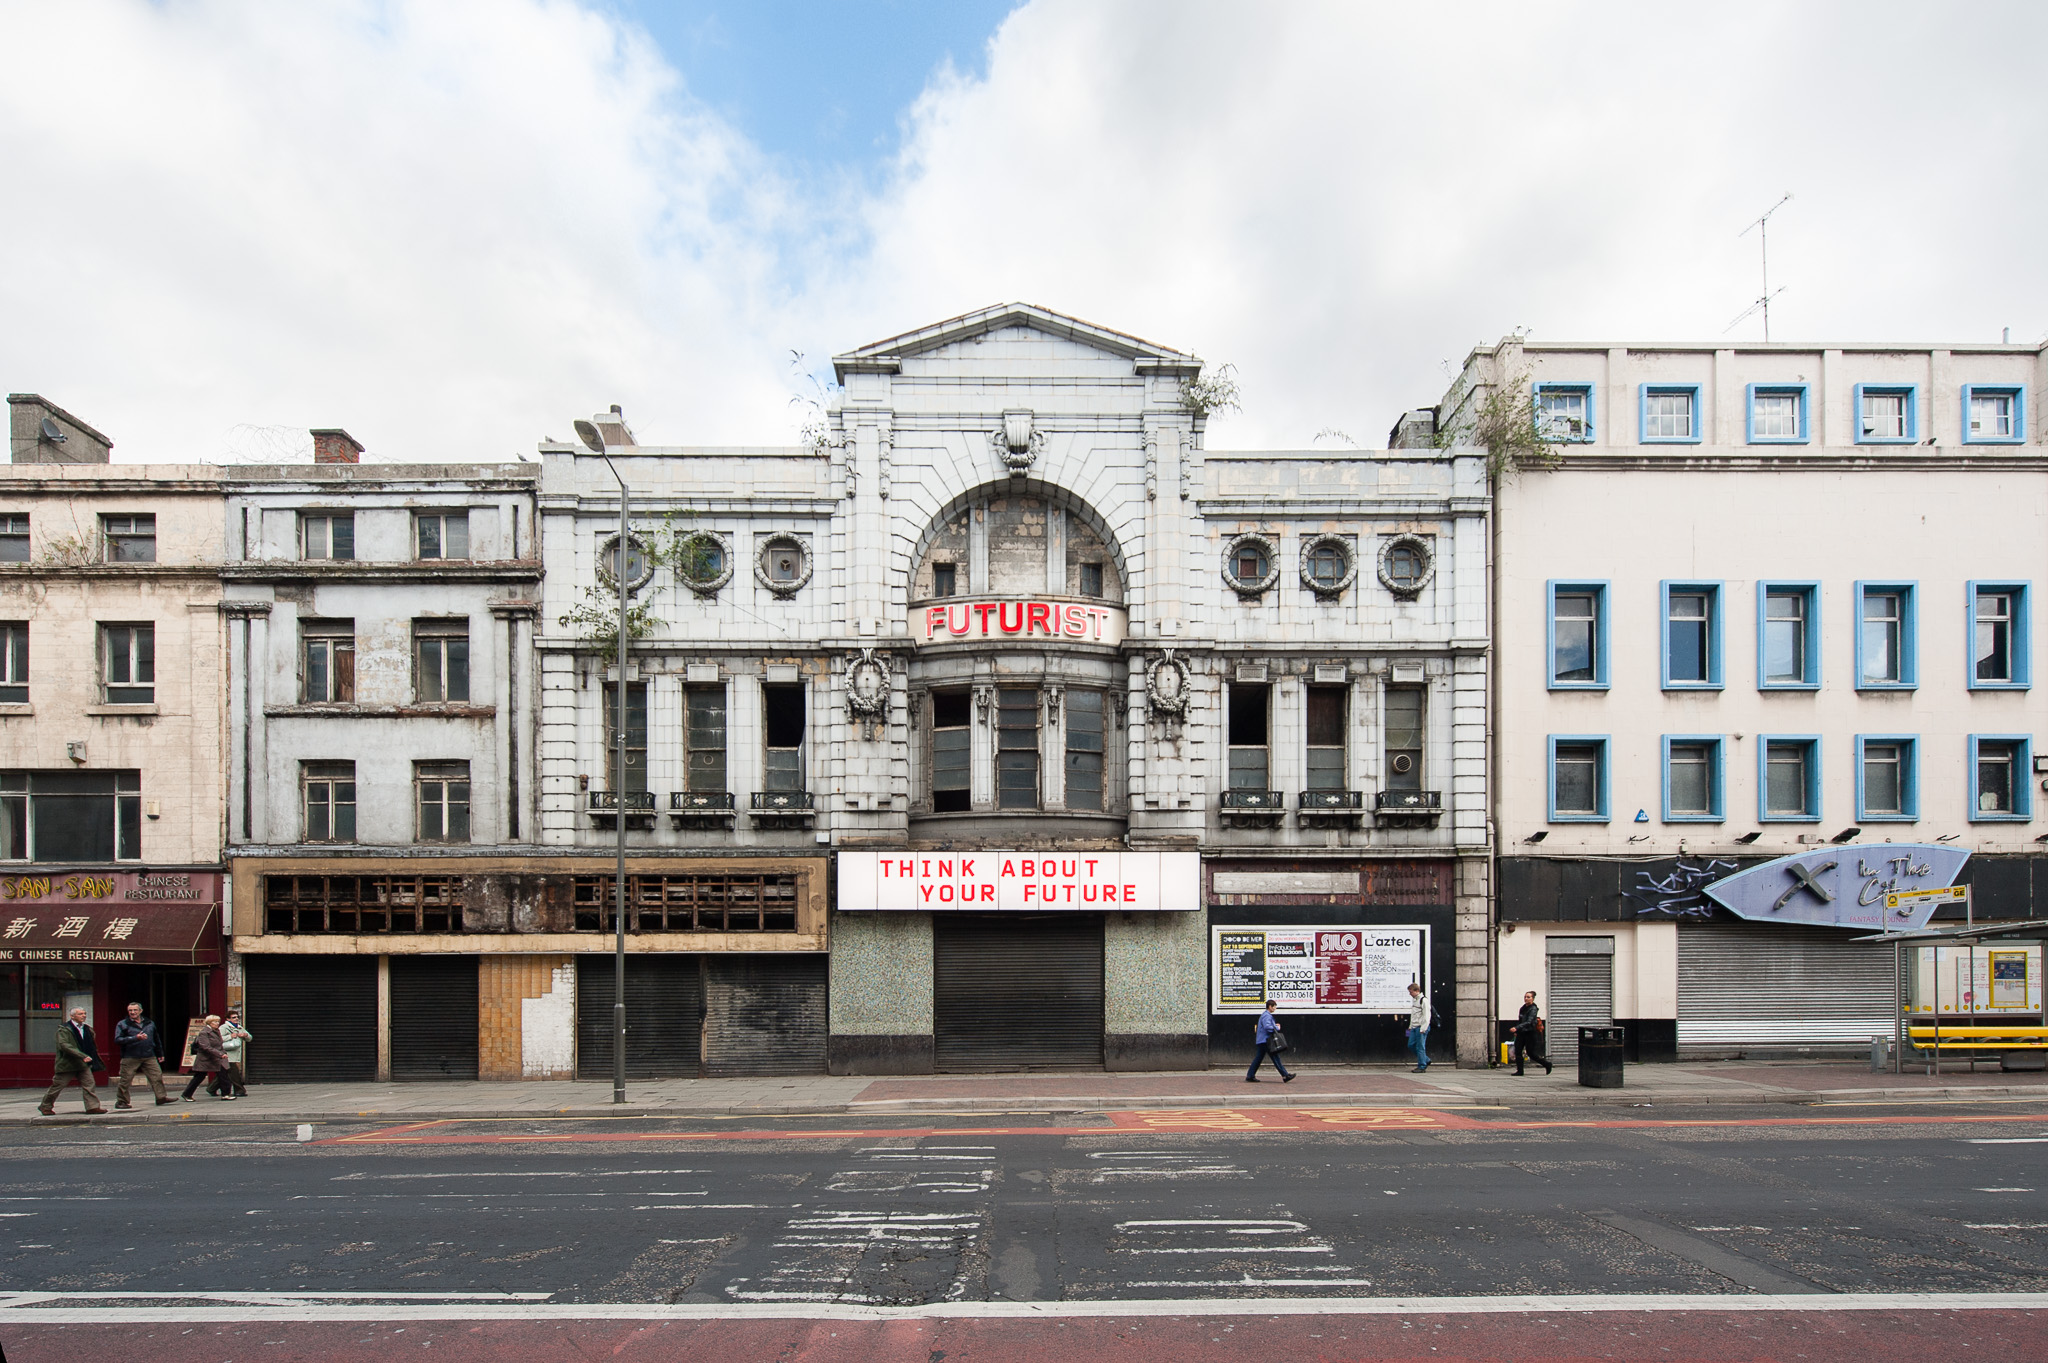 the-futurist-liverpool-lime-street-